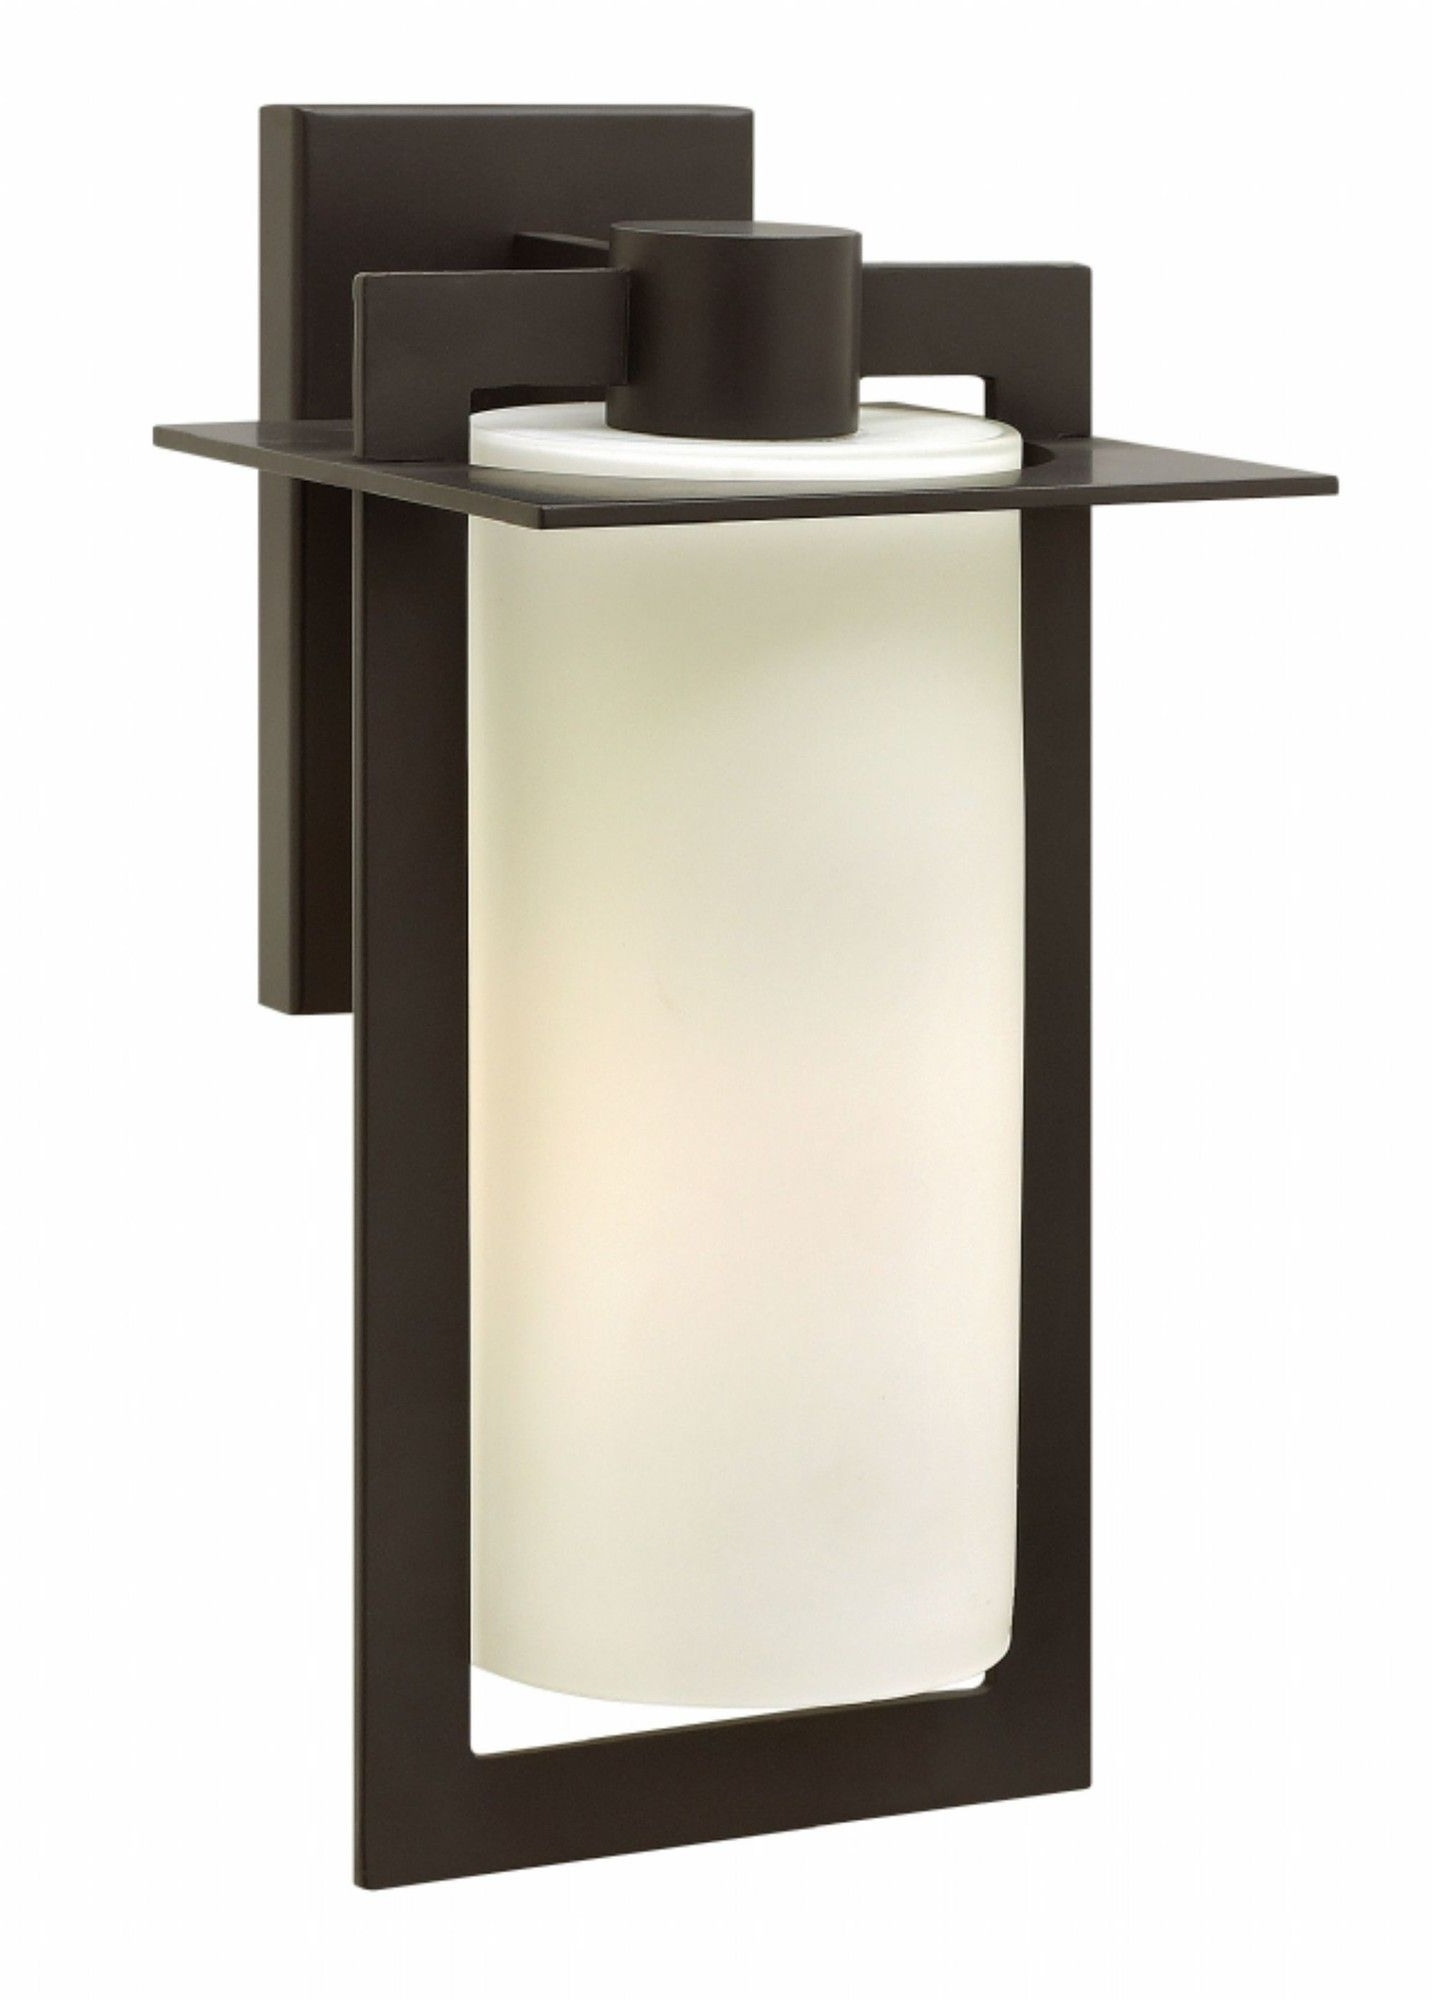 Colfax 1 Light Outdoor Wall Lantern (View 4 of 20)